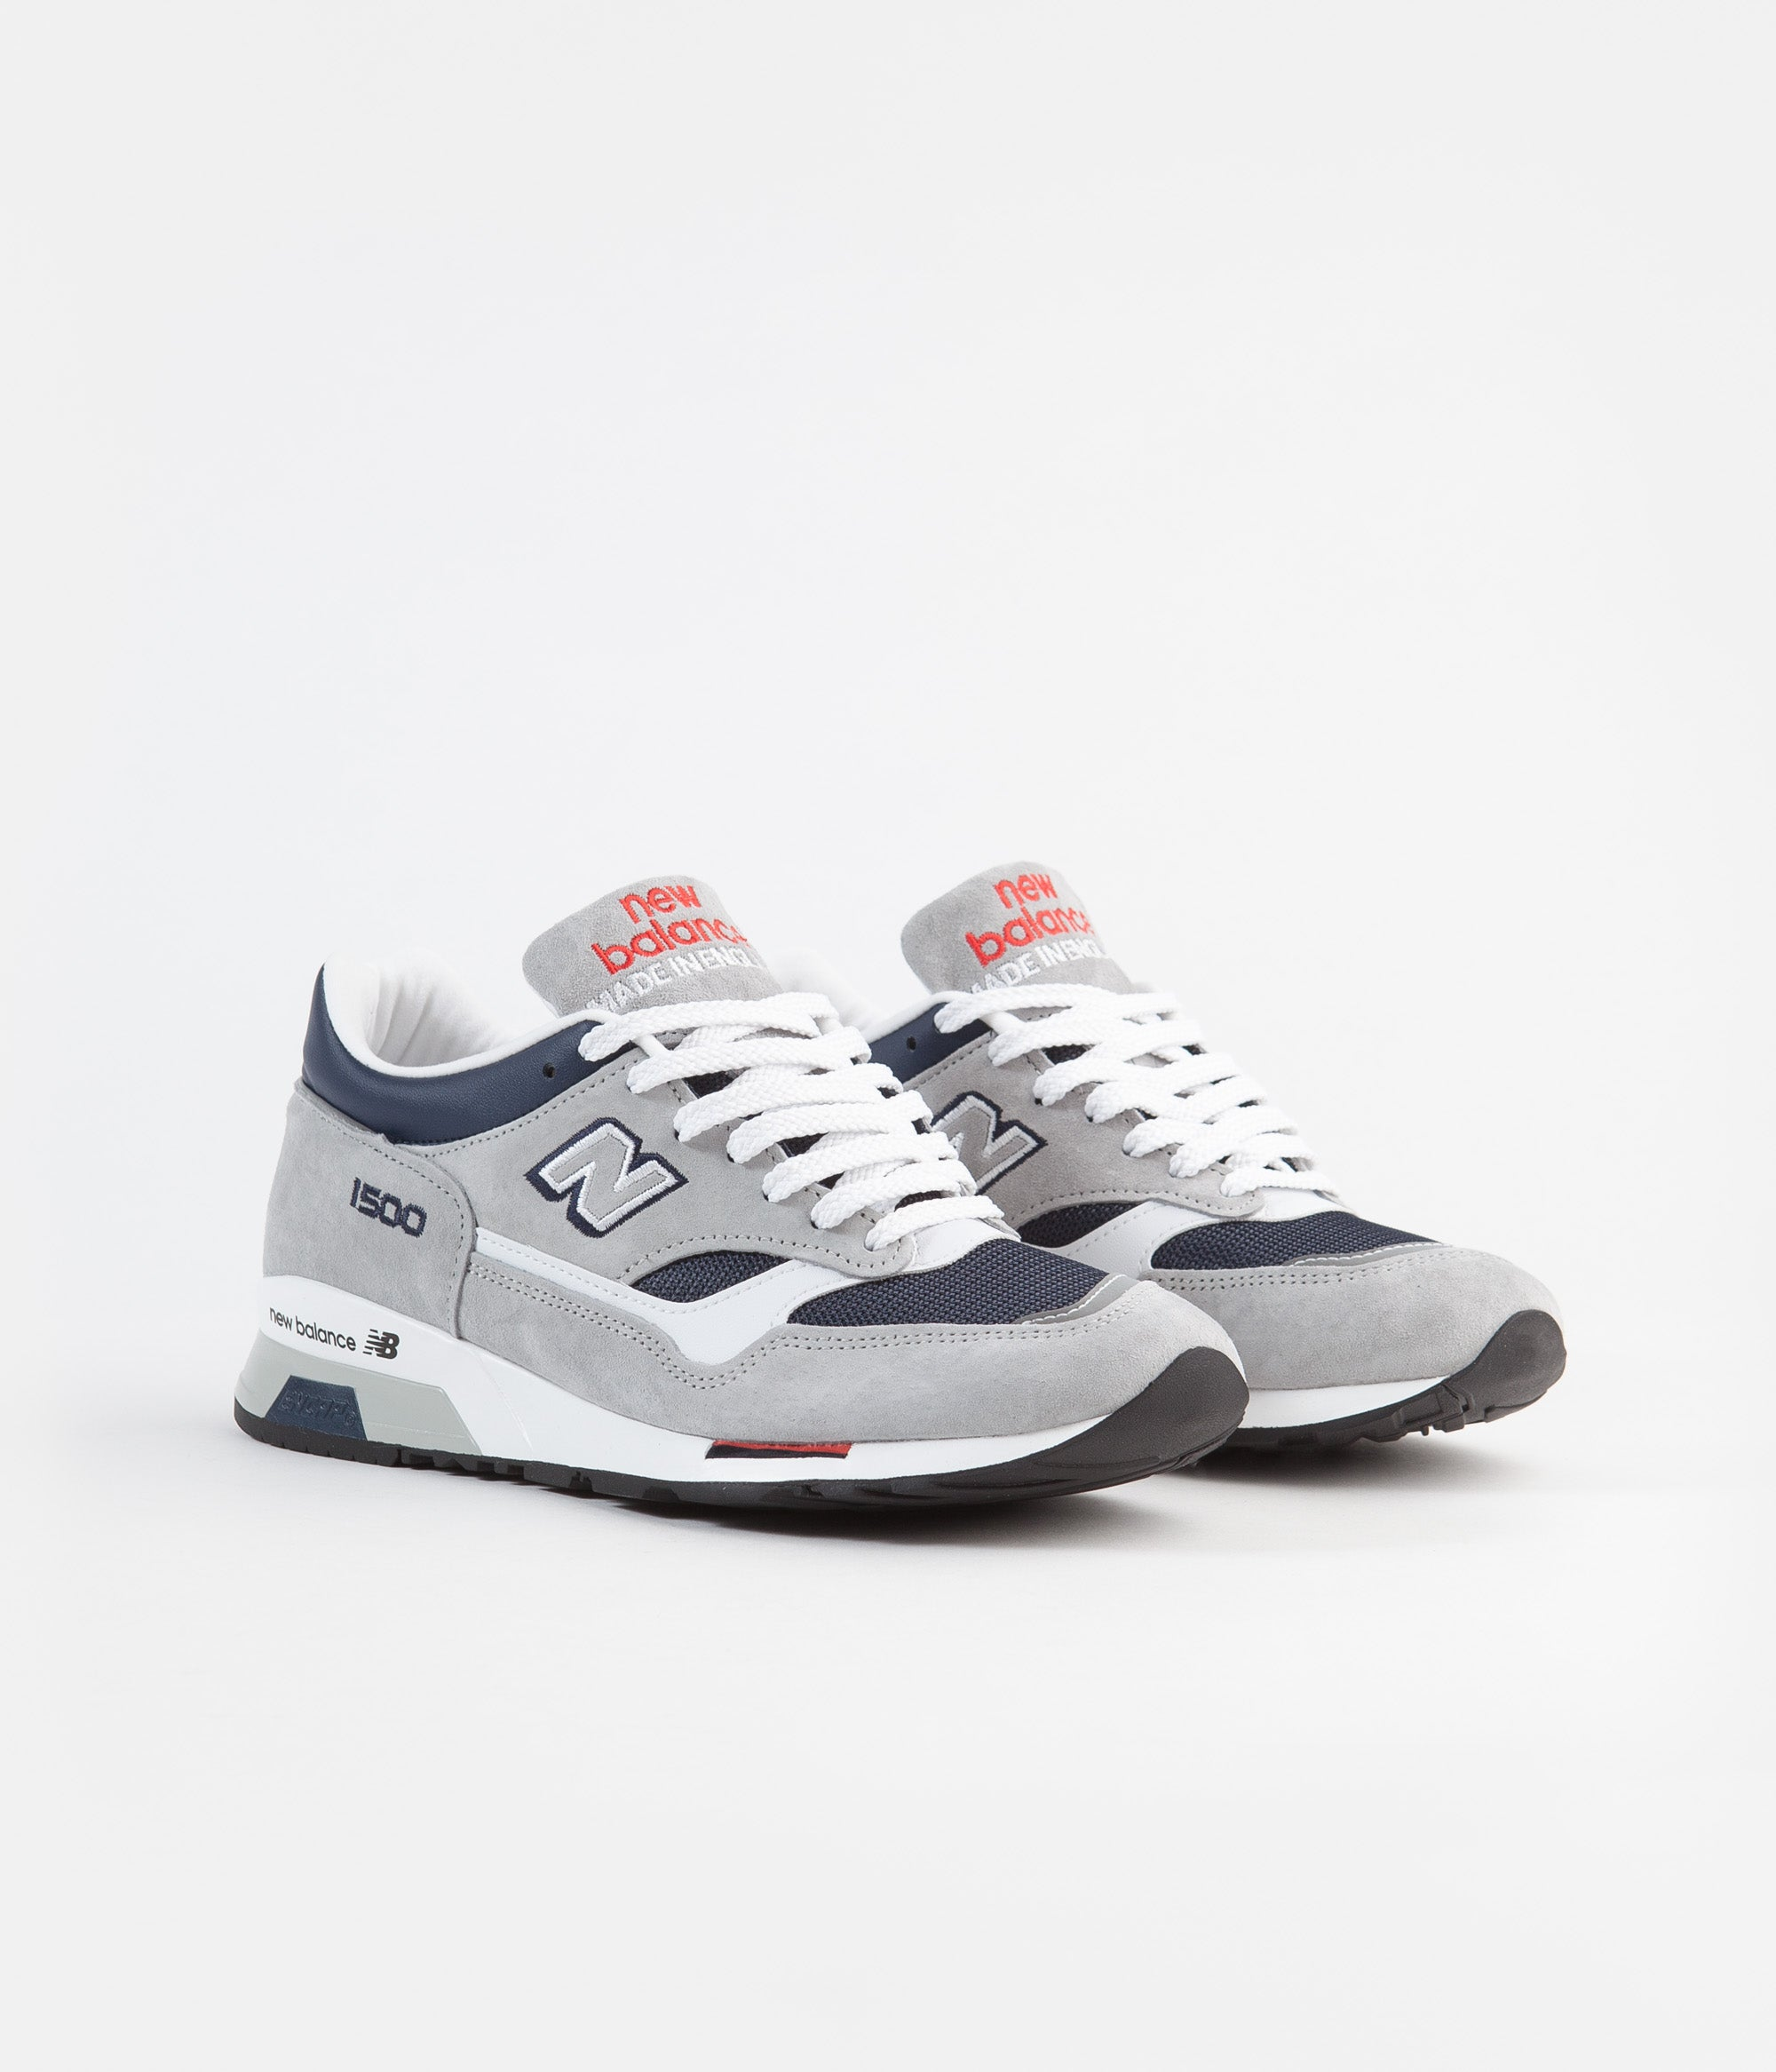 buy popular 5b23a acb7f New Balance 1500 Made in UK Shoes - Grey / Navy / Red ...